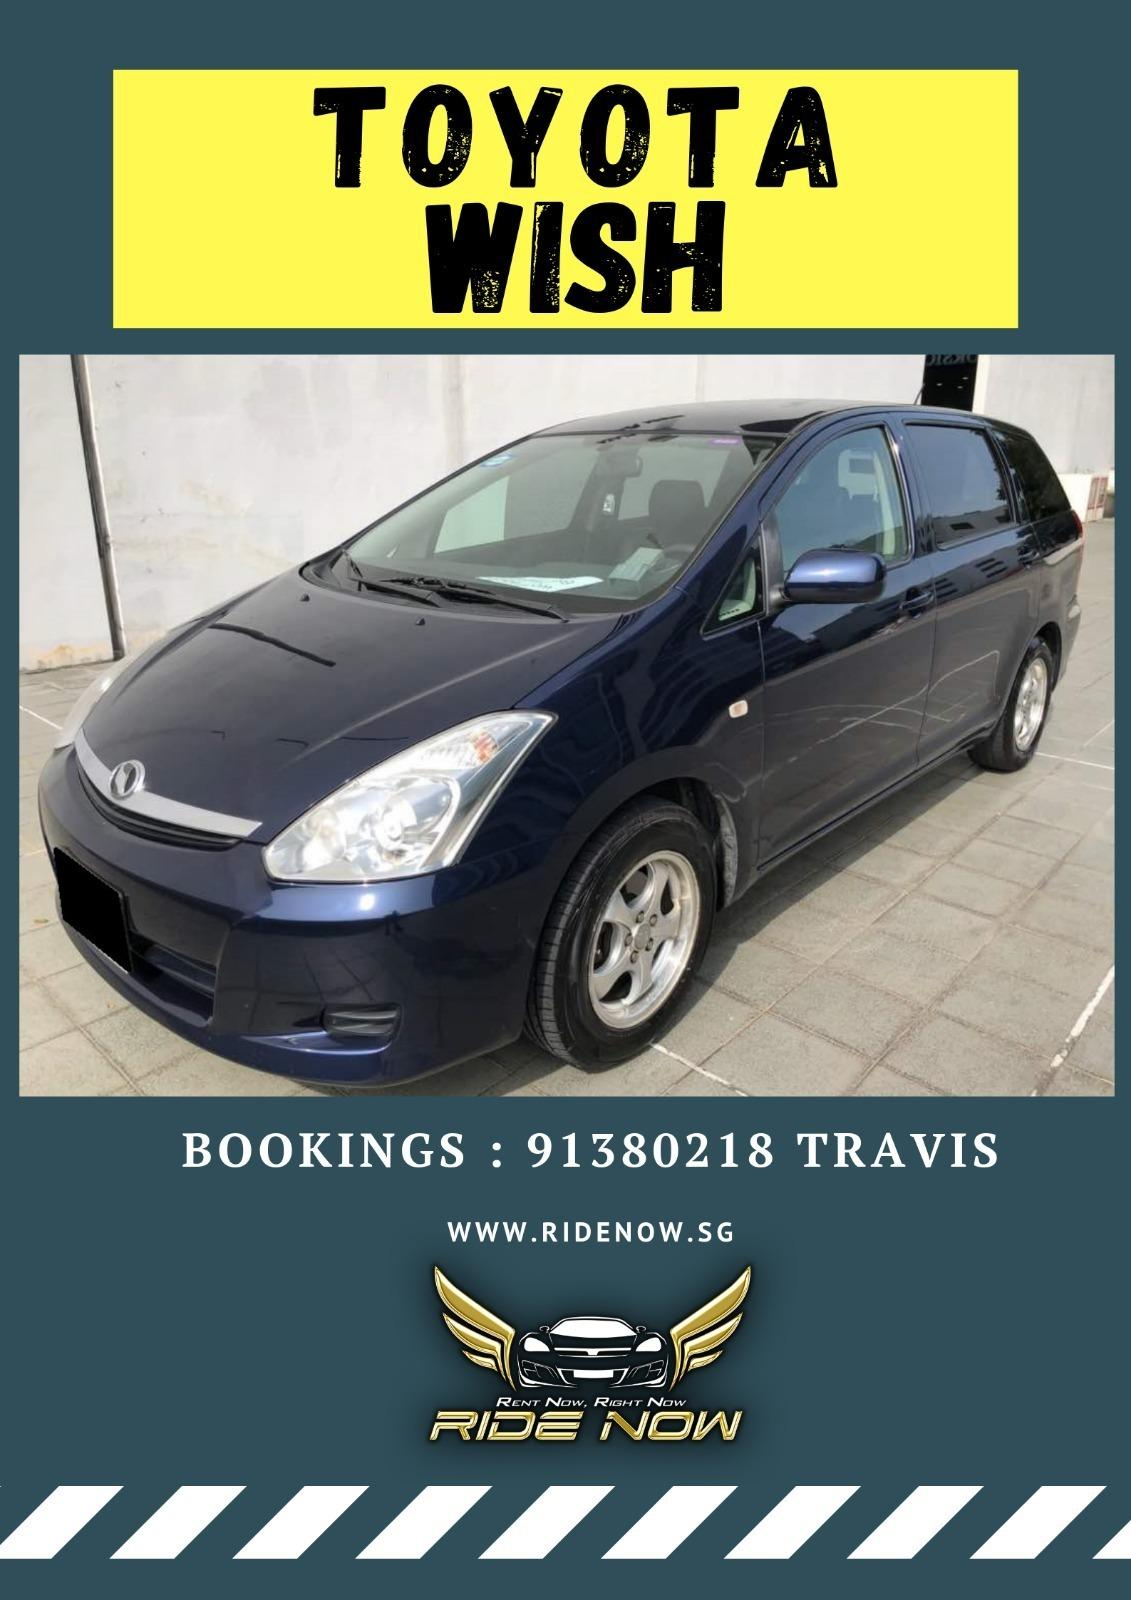 Toyota Wish 1.8A Spacious fuel efficient MPV for all day usage! Private Hire Ready!